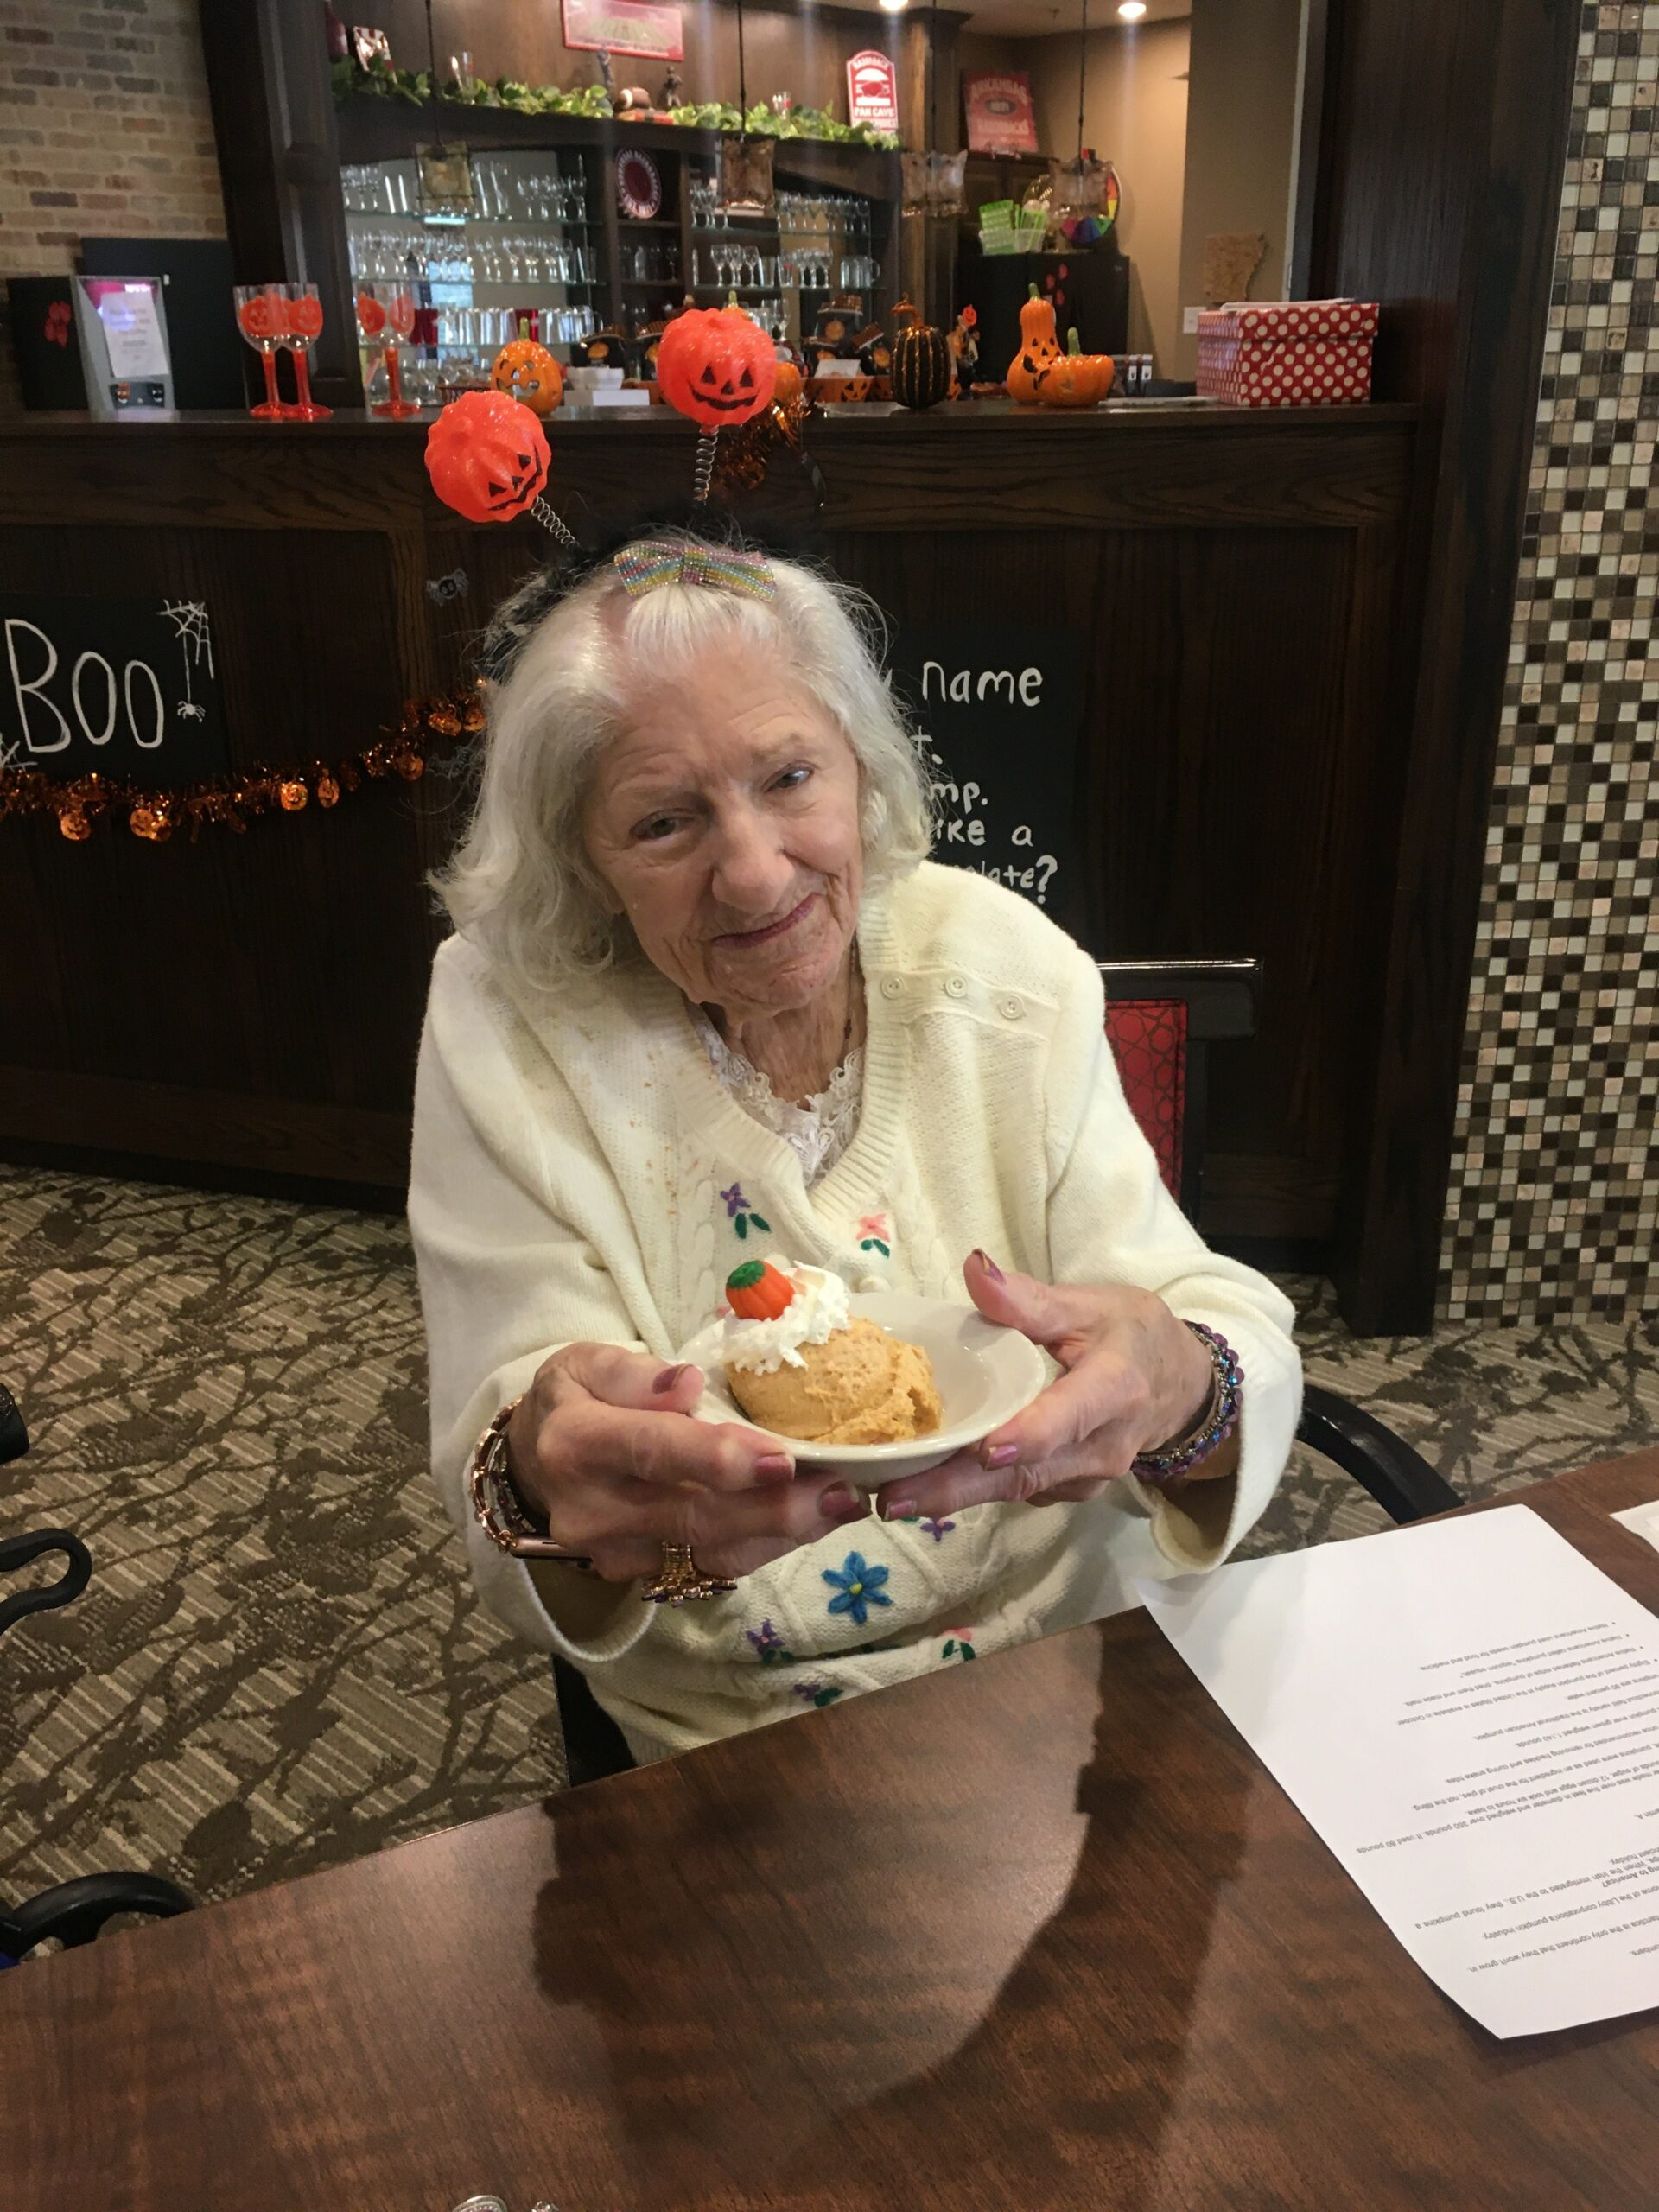 Primrose Pumpkin Everything Luncheon- Liz shows off her Pumpkin Mousse at the Primrose Pumpkin Everything Luncheon. Residents enjoyed Pumpkin Spice Coffee, Pumpkin Mousse, Pumpkin Spice Rolls, Pumpkin Face Pies, and More!